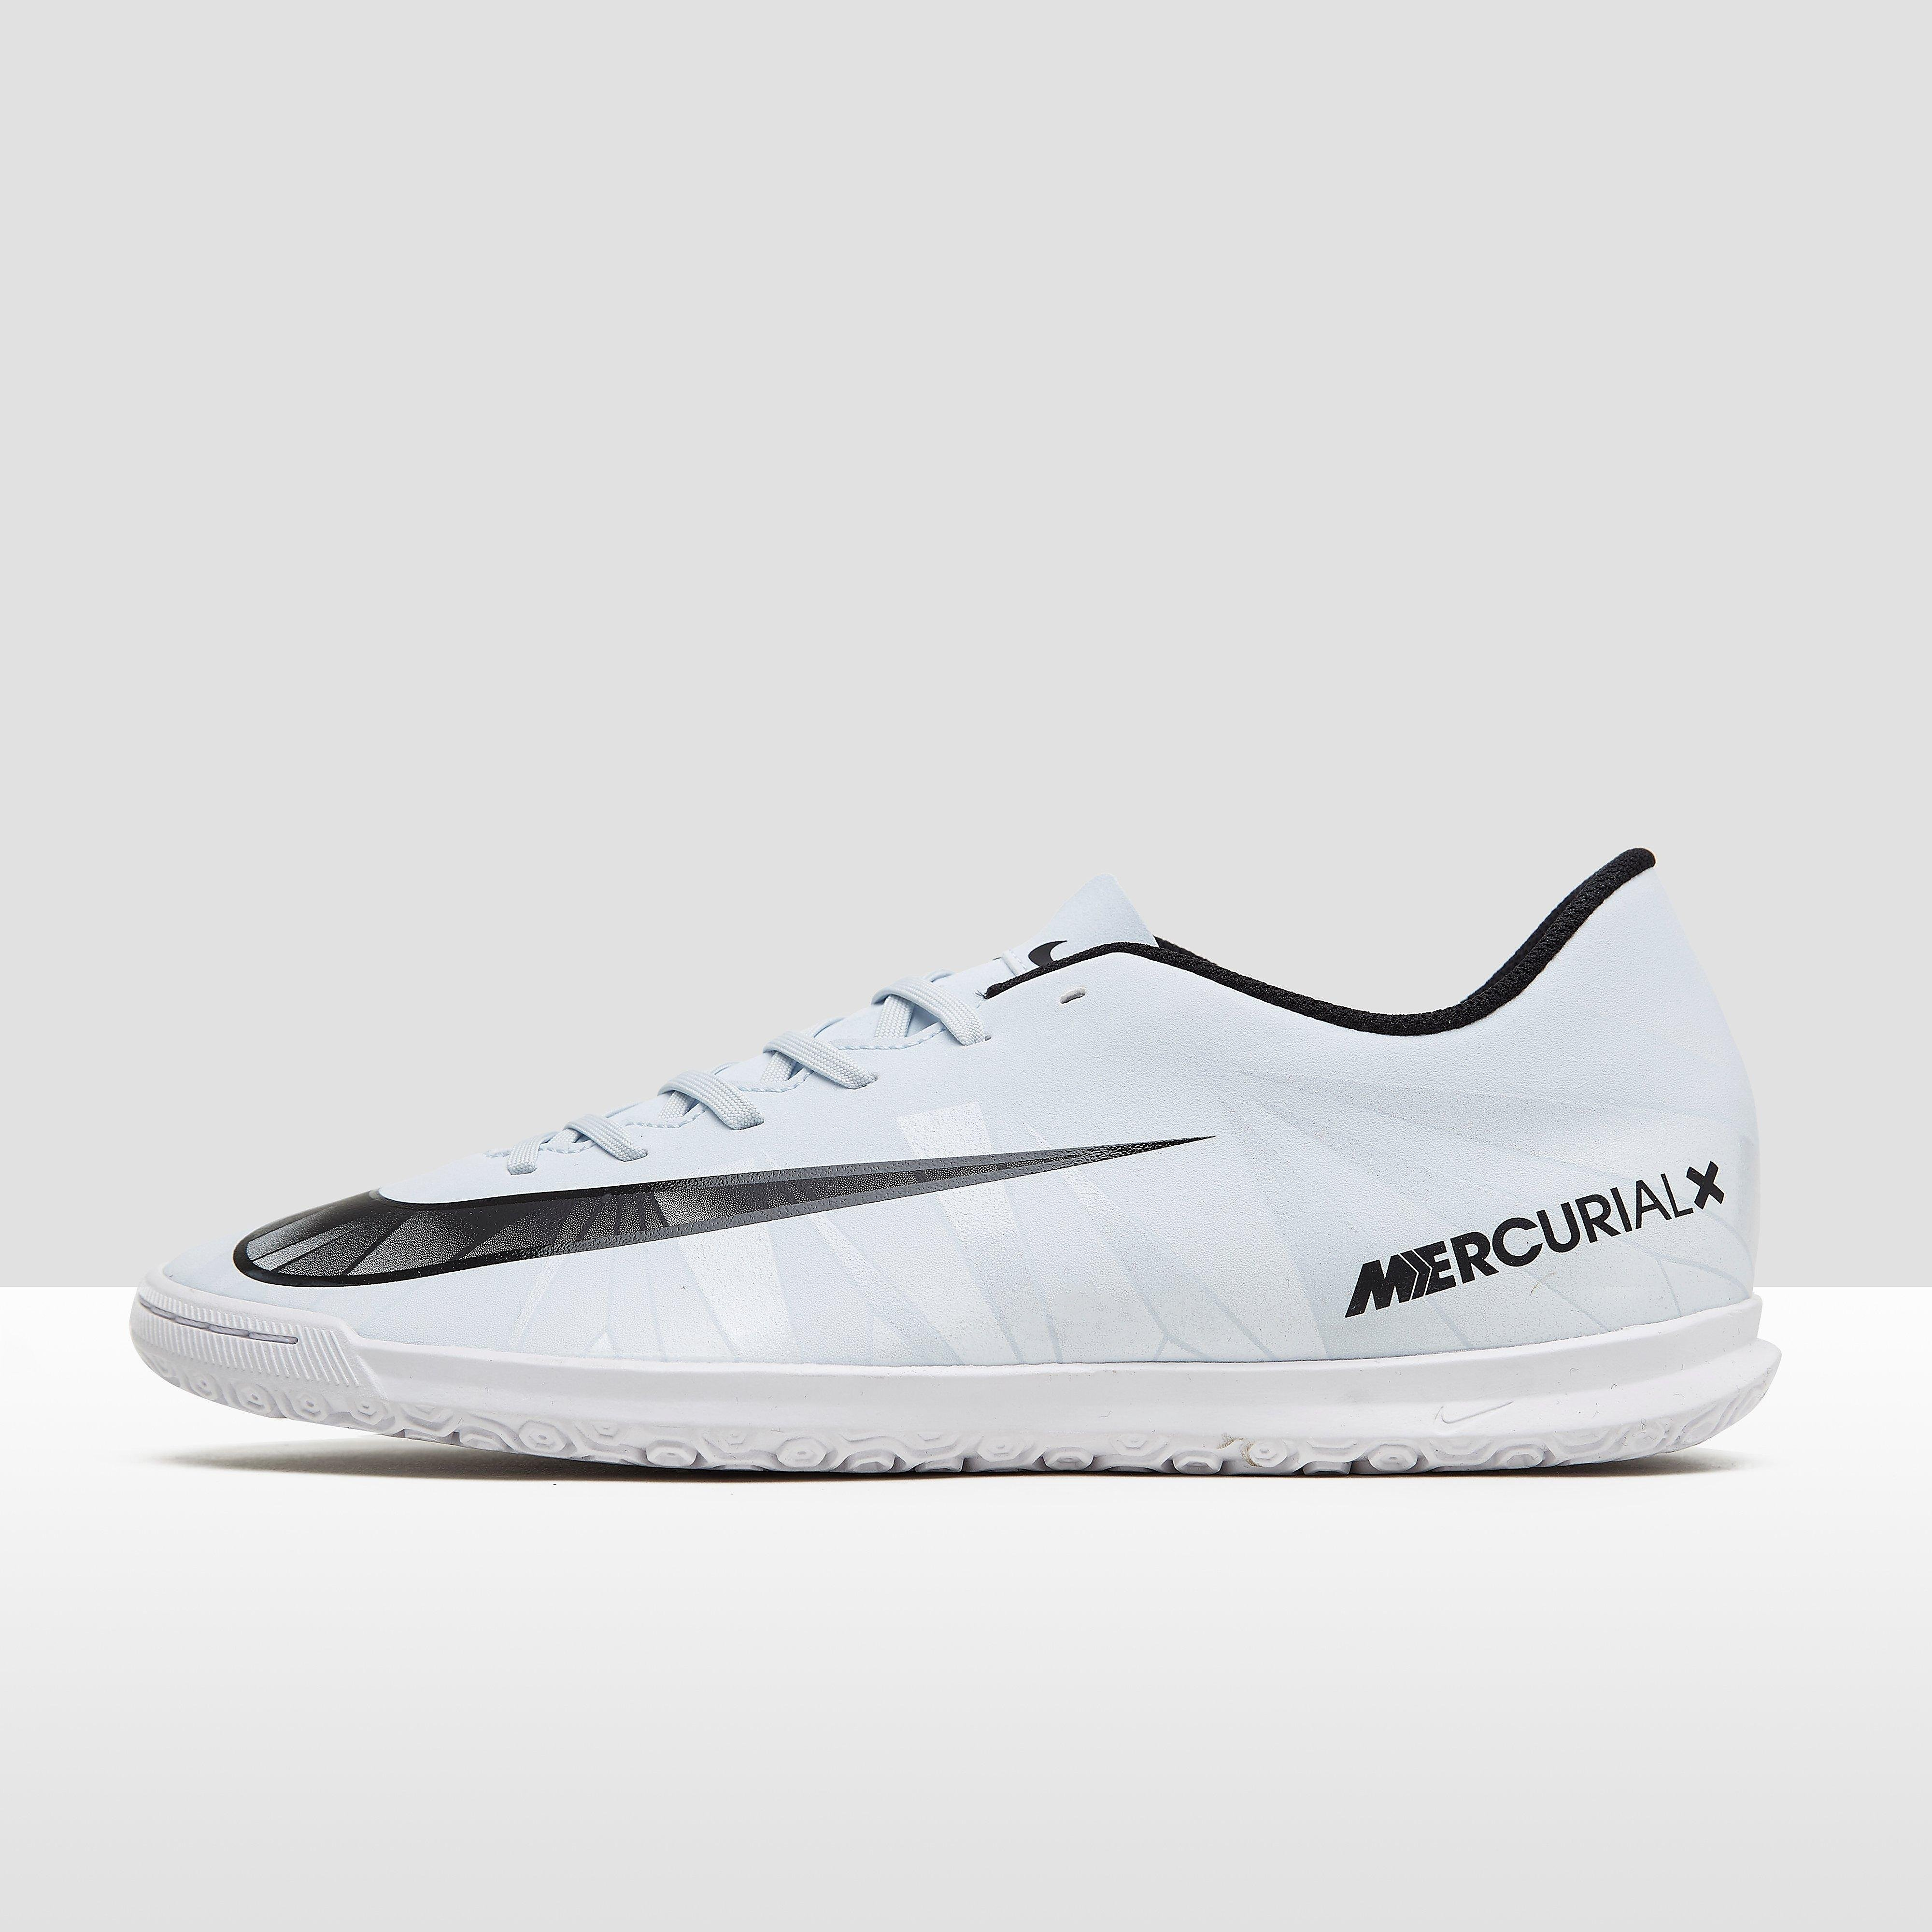 NIKE MERCURIALX VORTEX III CR7 IC VOETBALSCHOENEN WIT HEREN